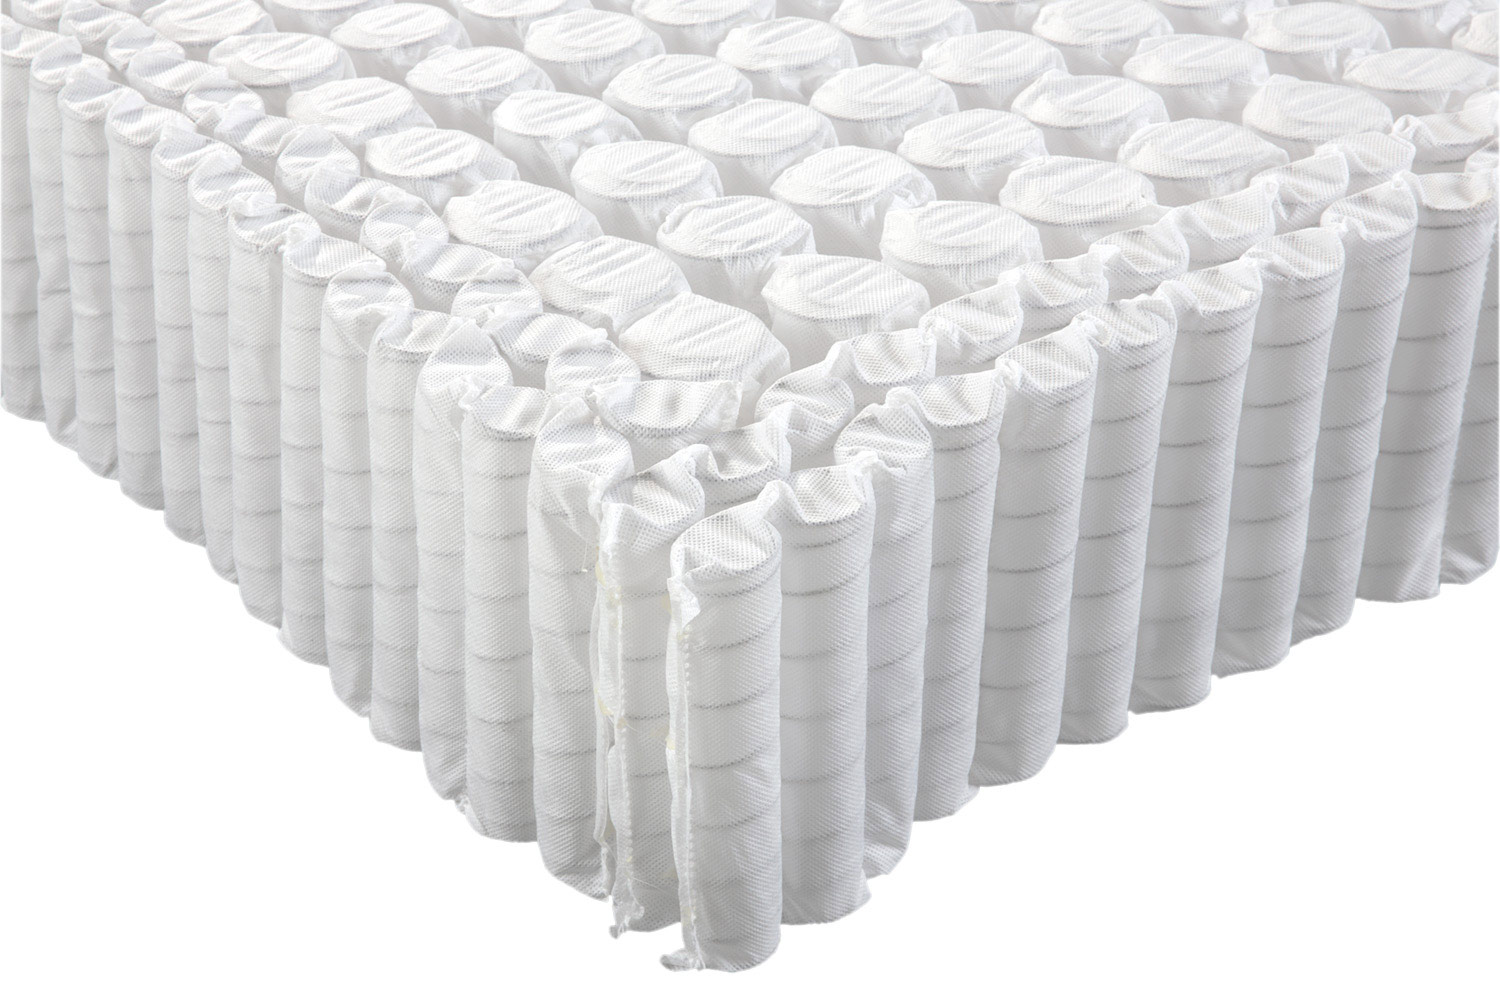 Edge support coils for the Eco Terra hybrid innerspring natural latex mattress.